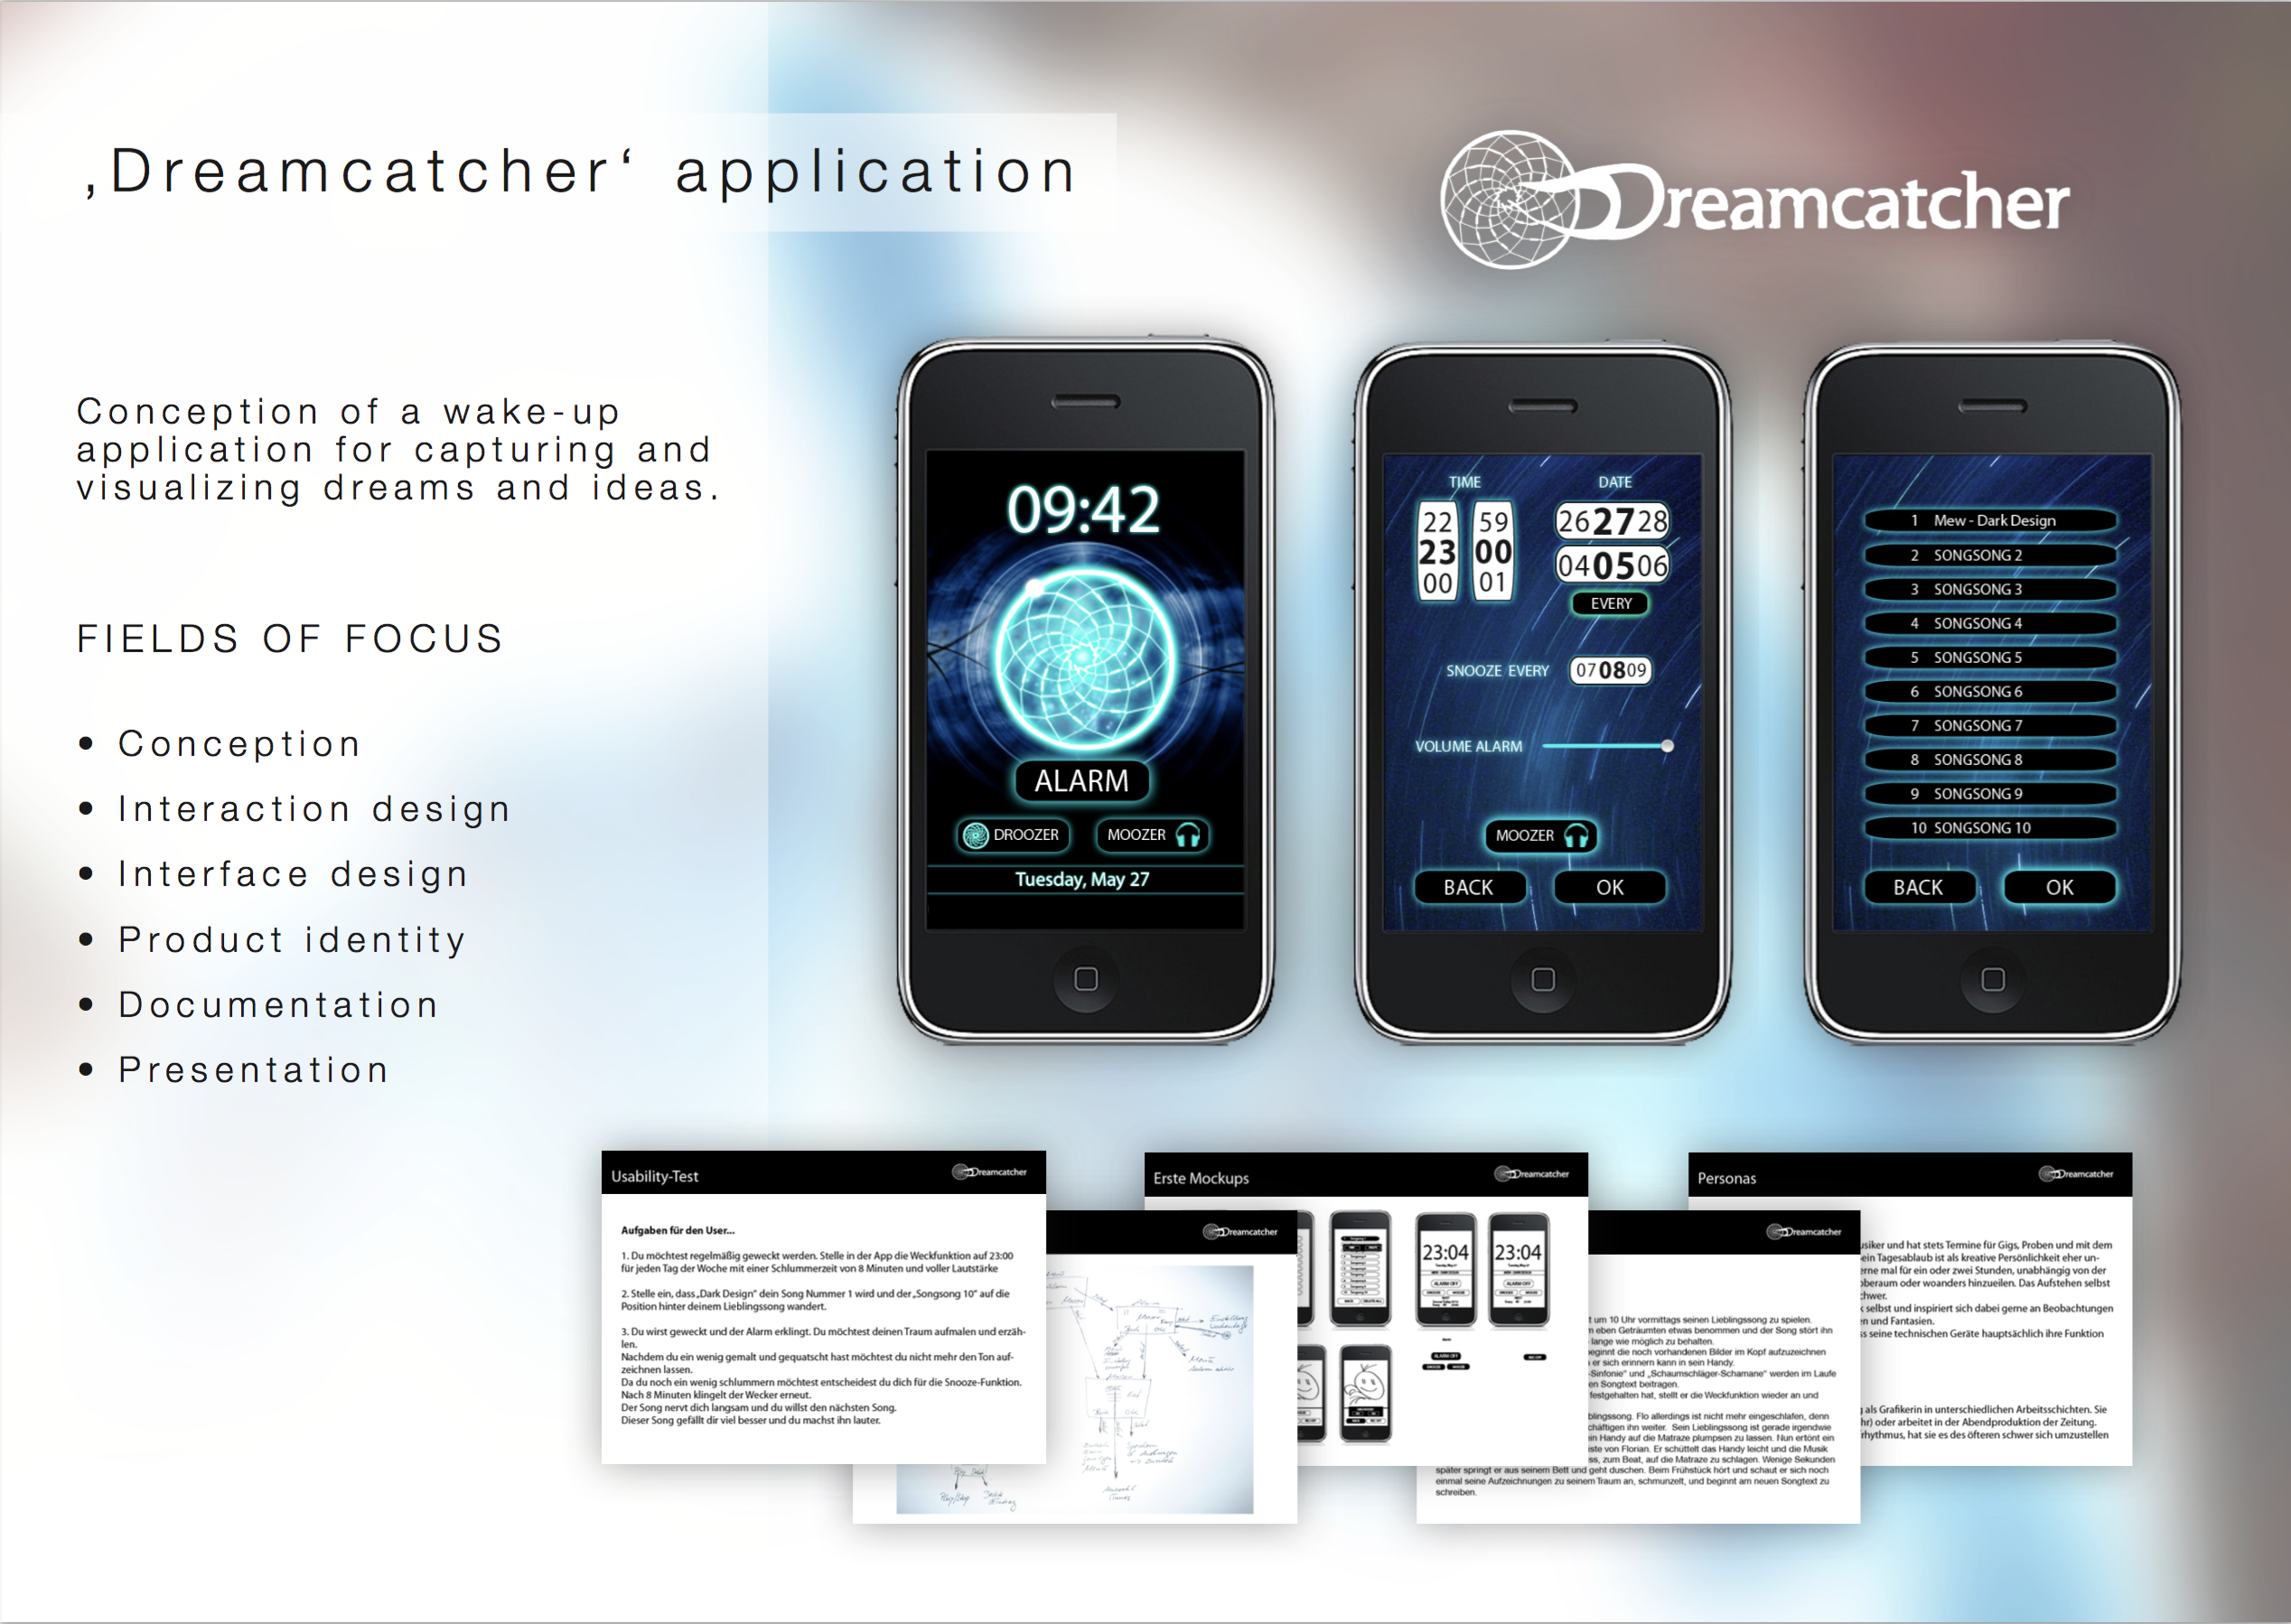 dreamcatcher_application_conception_christoph_bartetzko